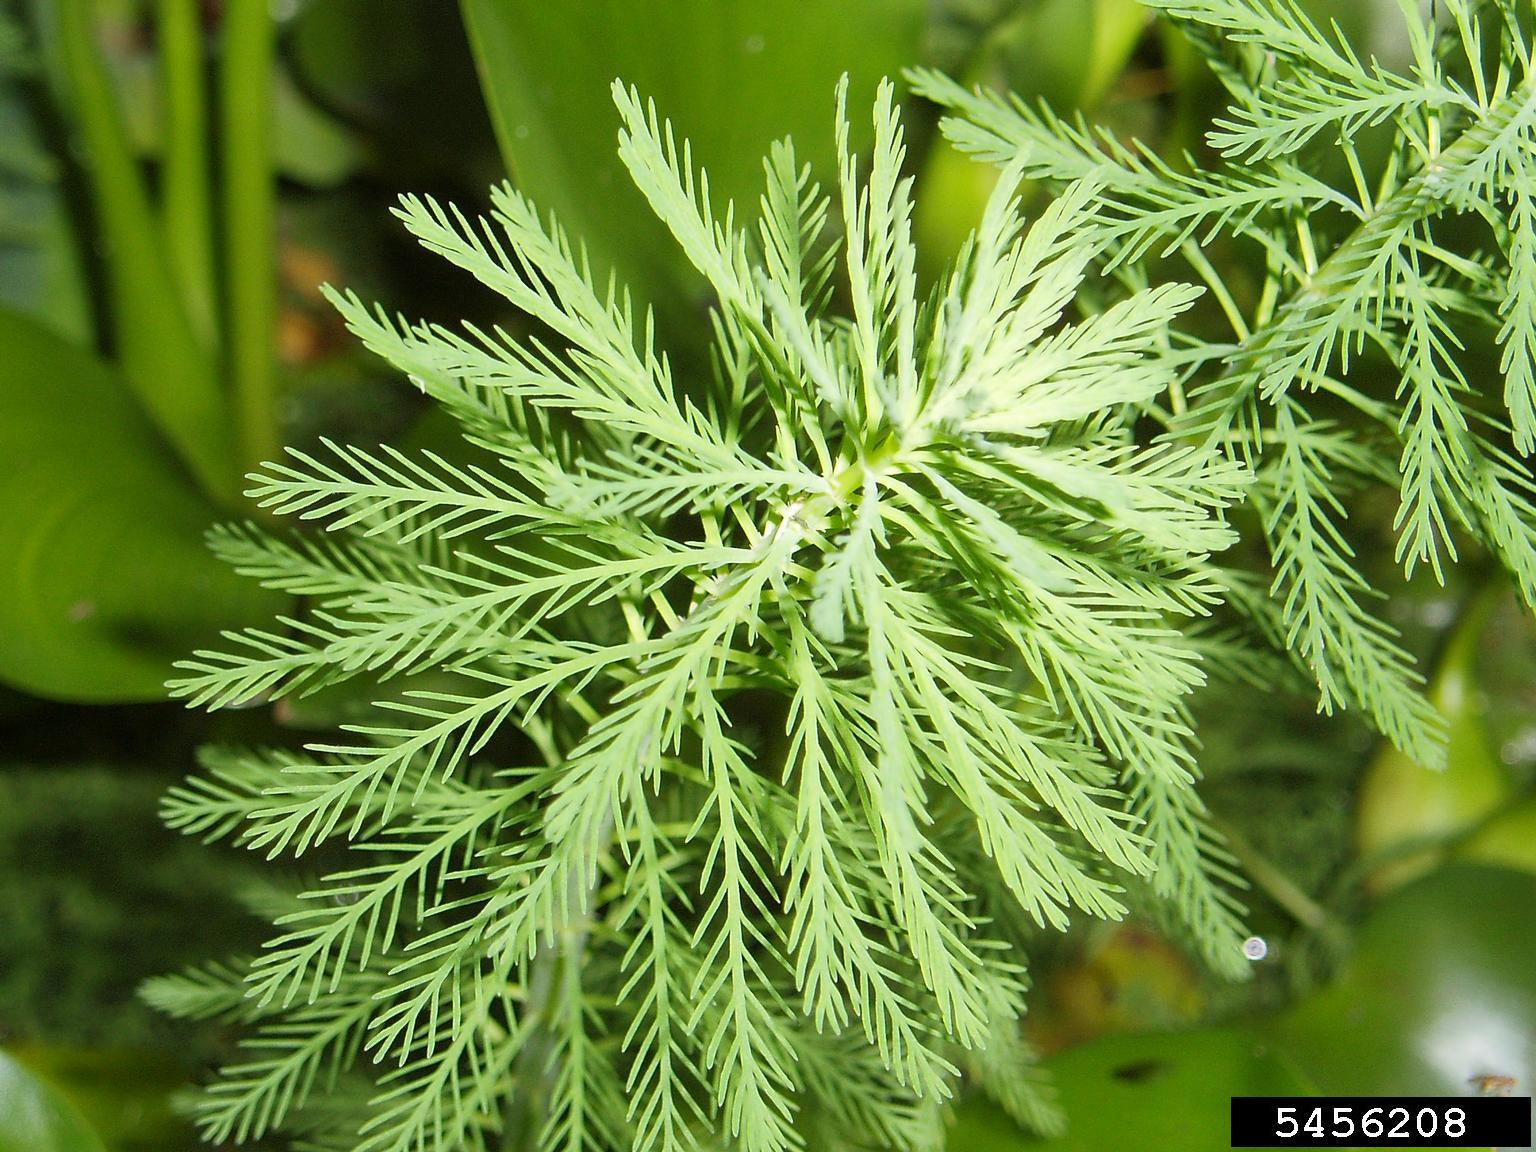 Parrot feather leaves